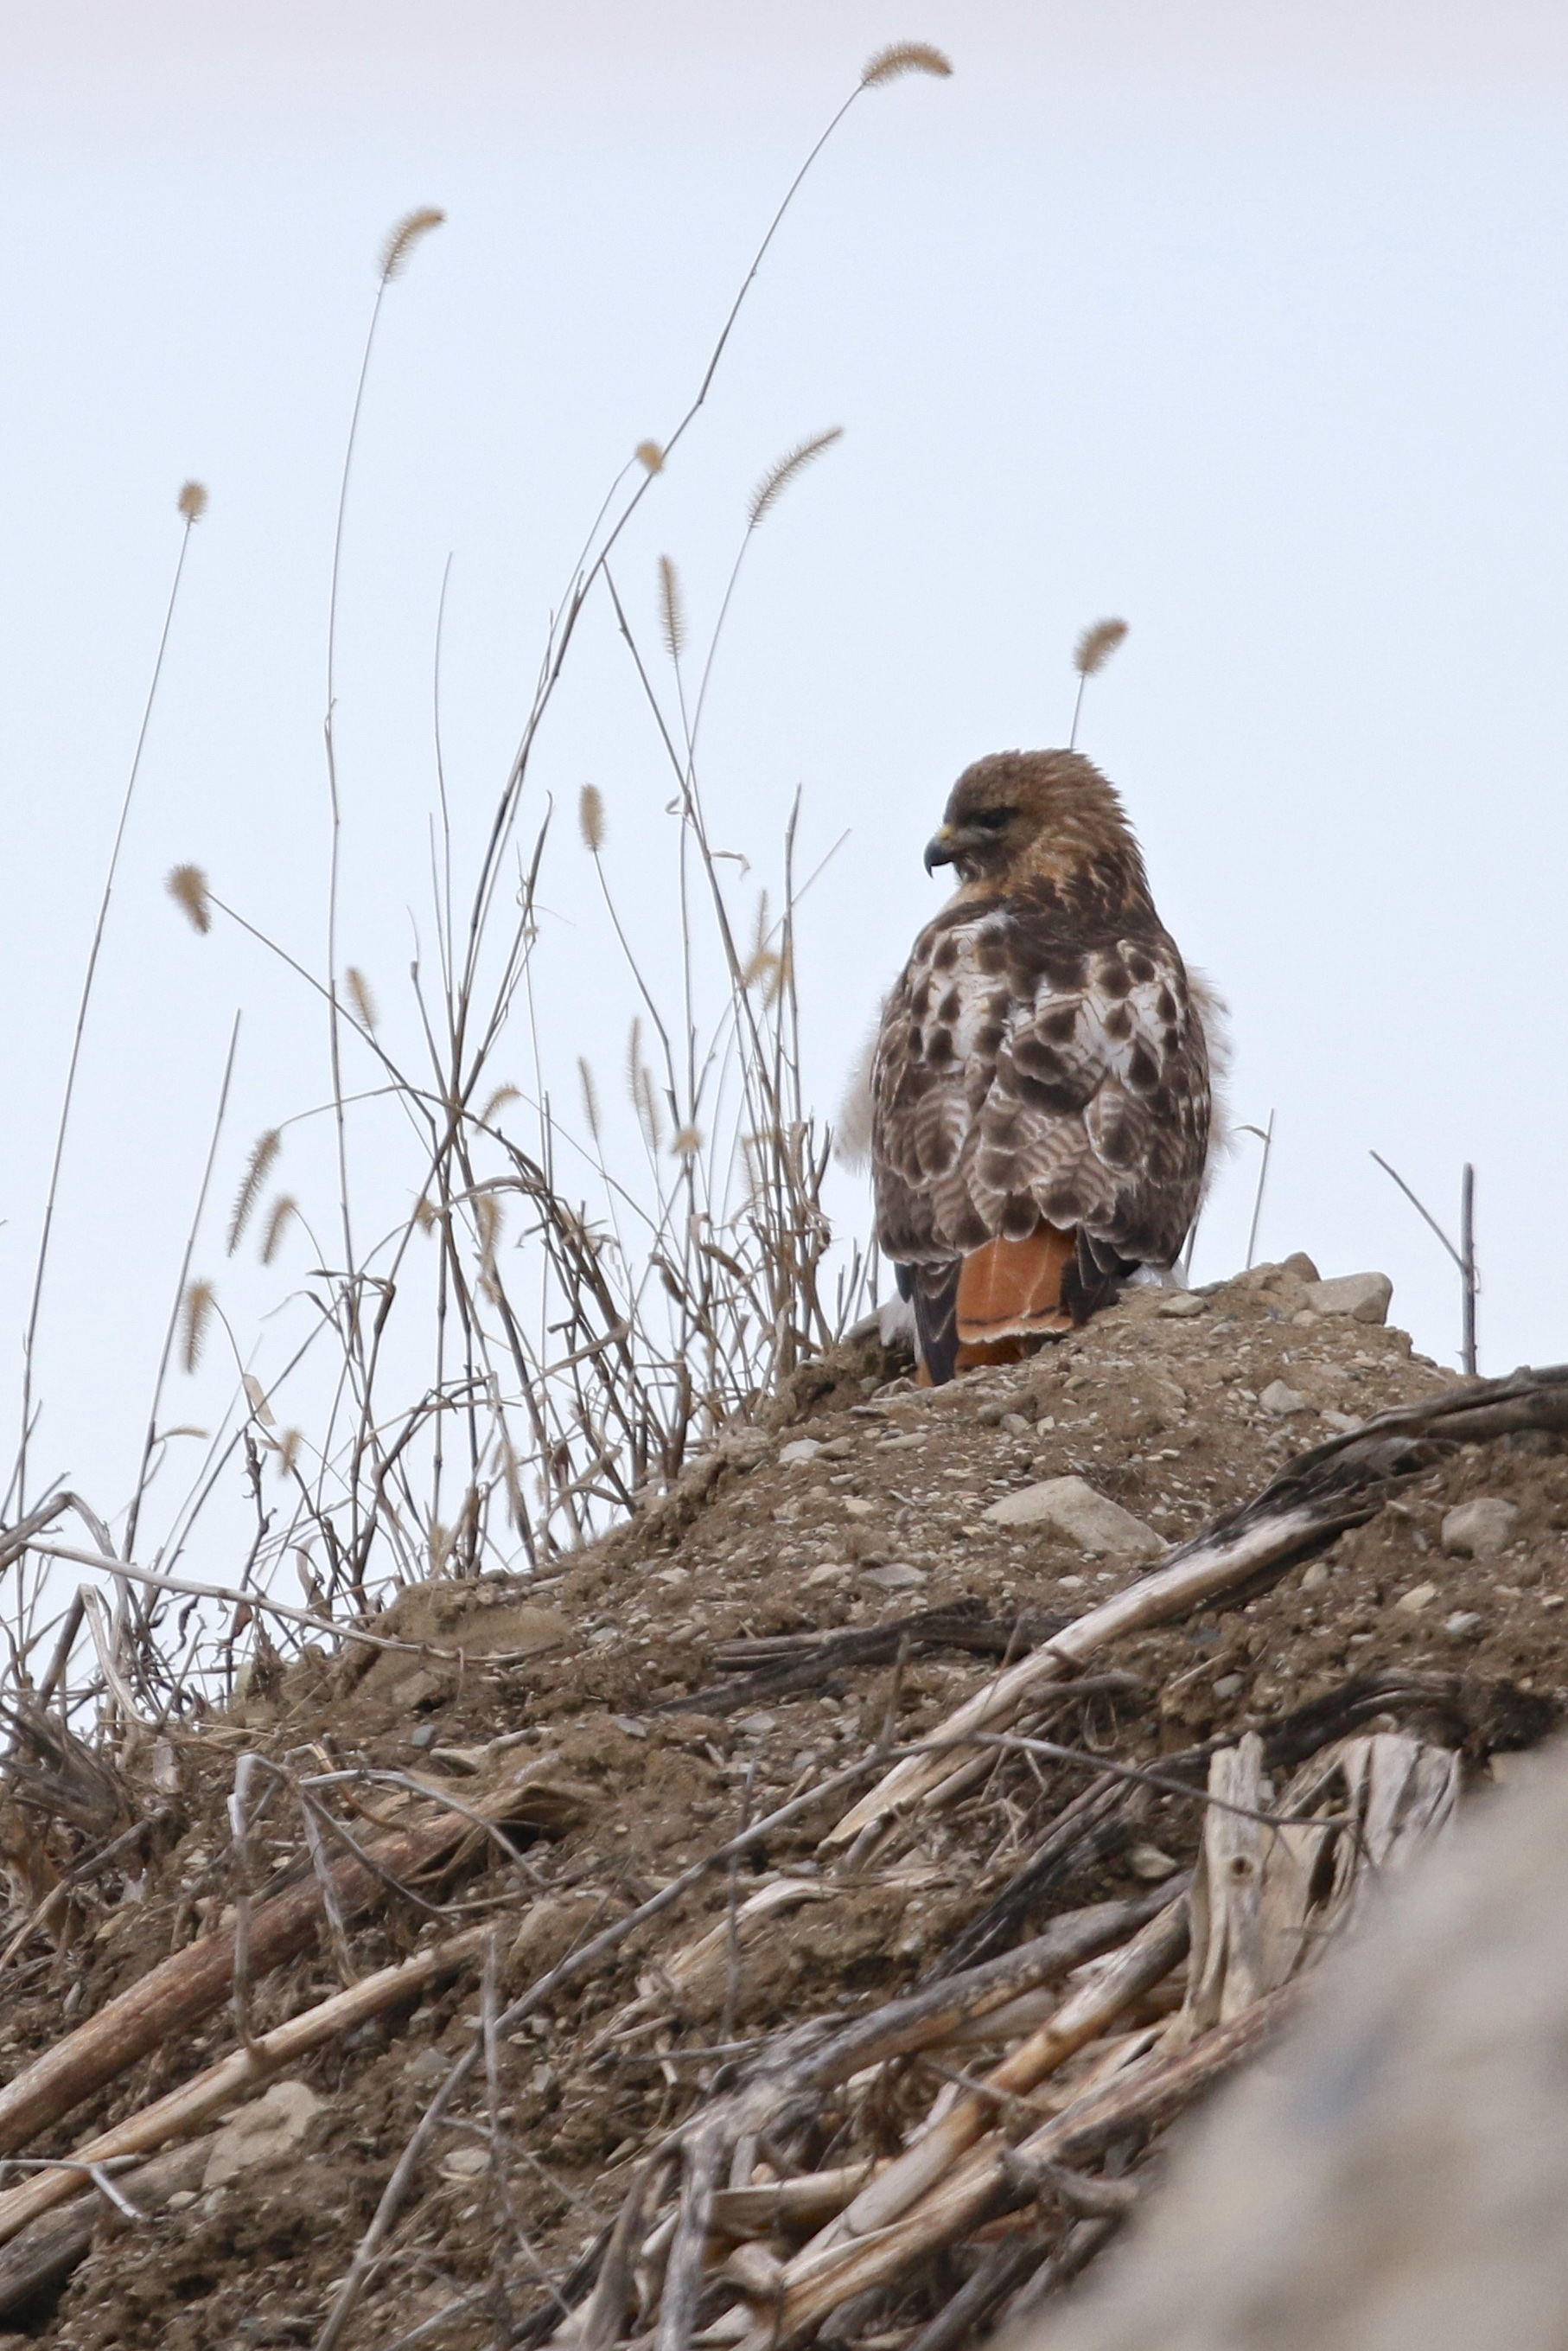 ~Red-tailed Hawk perched on a dirt pile off of Sanfordville Road in Warwick, NY 3/28/15.~